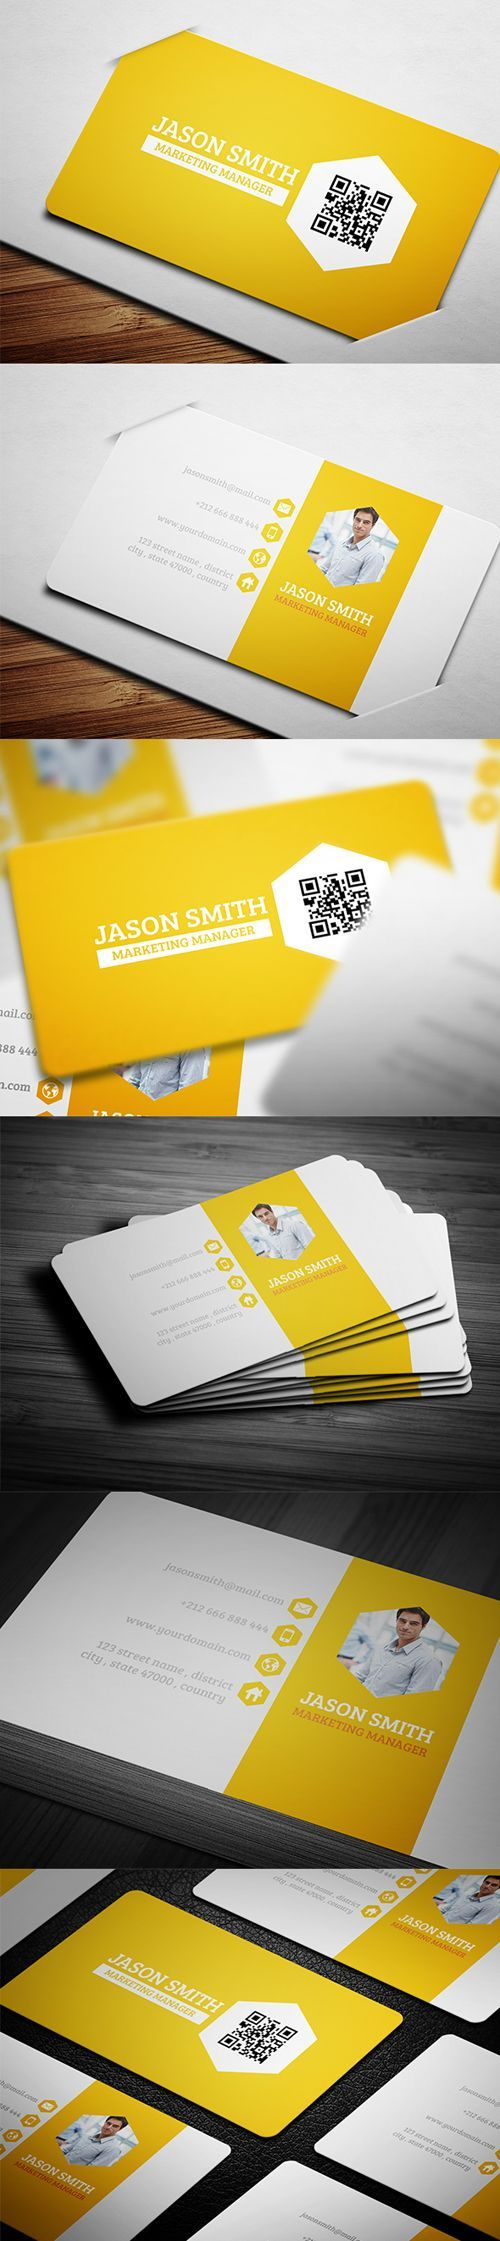 17 best images about business card on pinterest cards black business cards template design 4 businesscards businesscardtemplates creativebusinesscards reheart Images